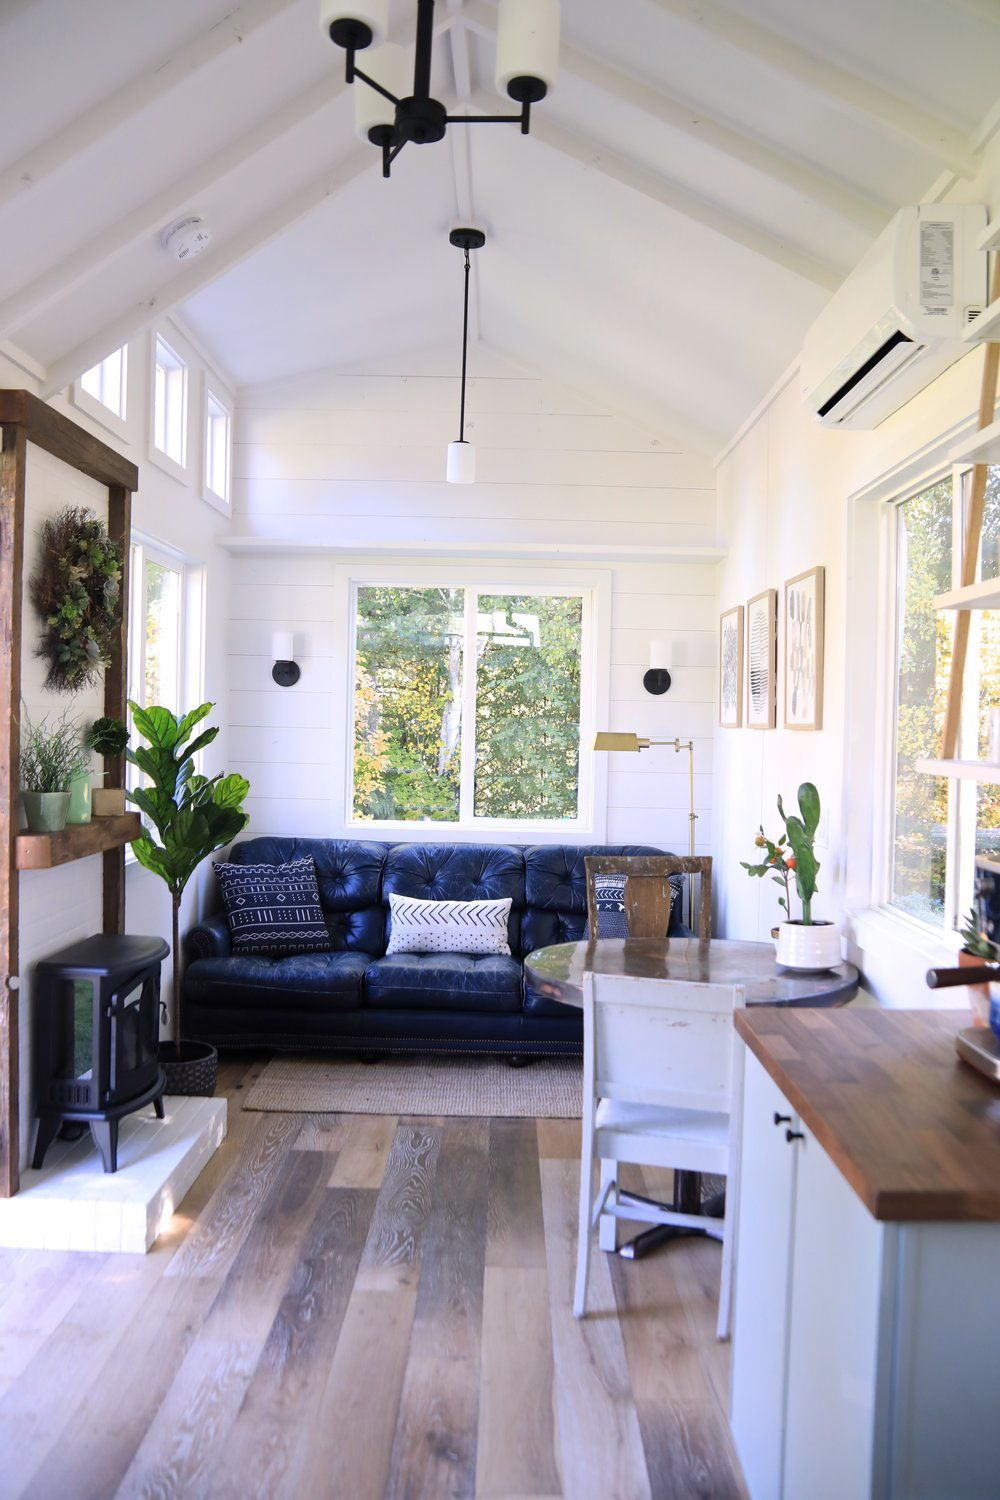 Cadence By Handcrafted Movement Tiny Living Tiny House Interior Design Tiny House Interior Tiny House Living Room #tiny #home #living #room